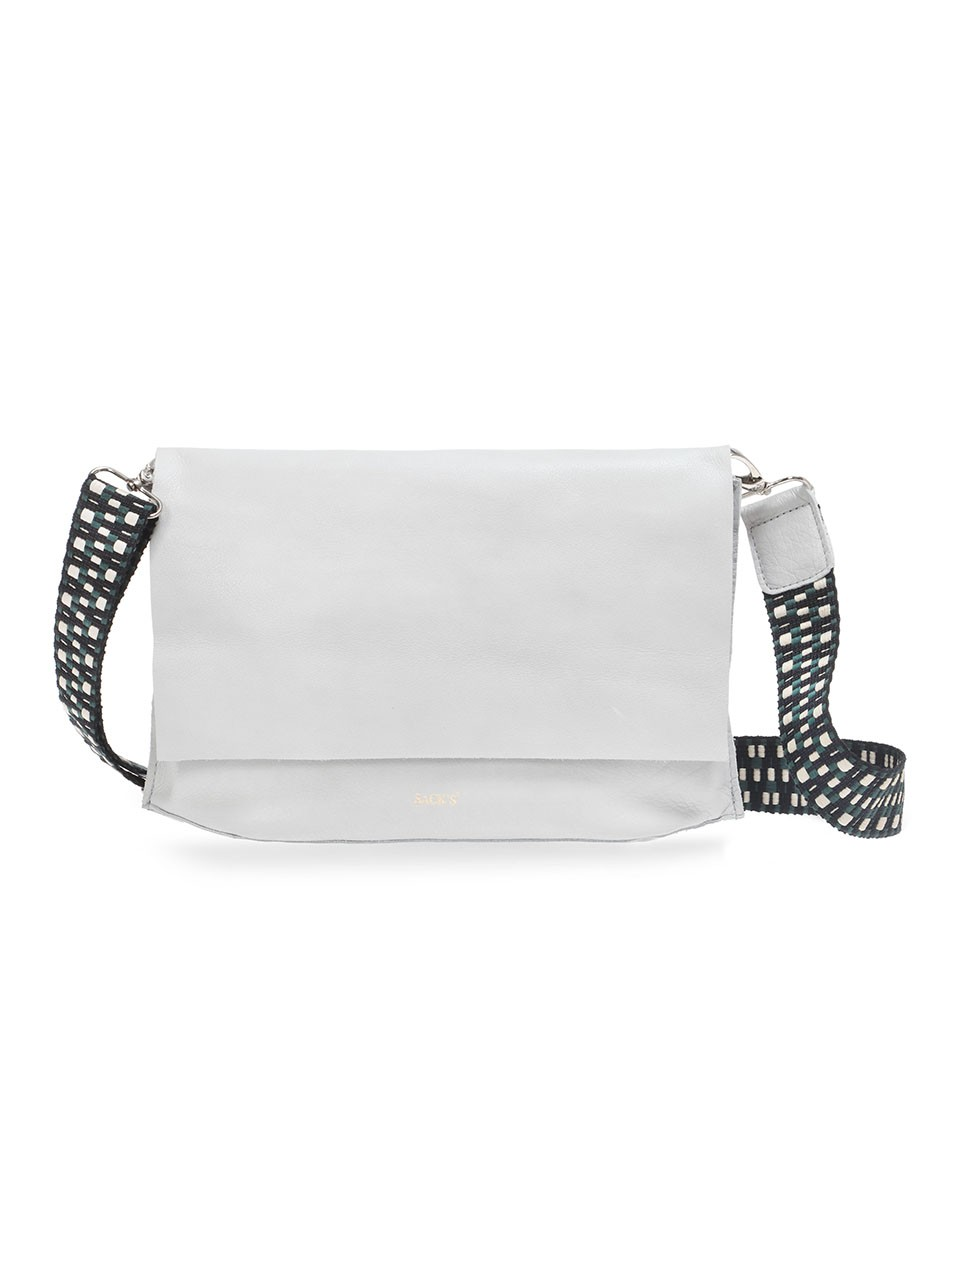 Strip Shoulder Bag